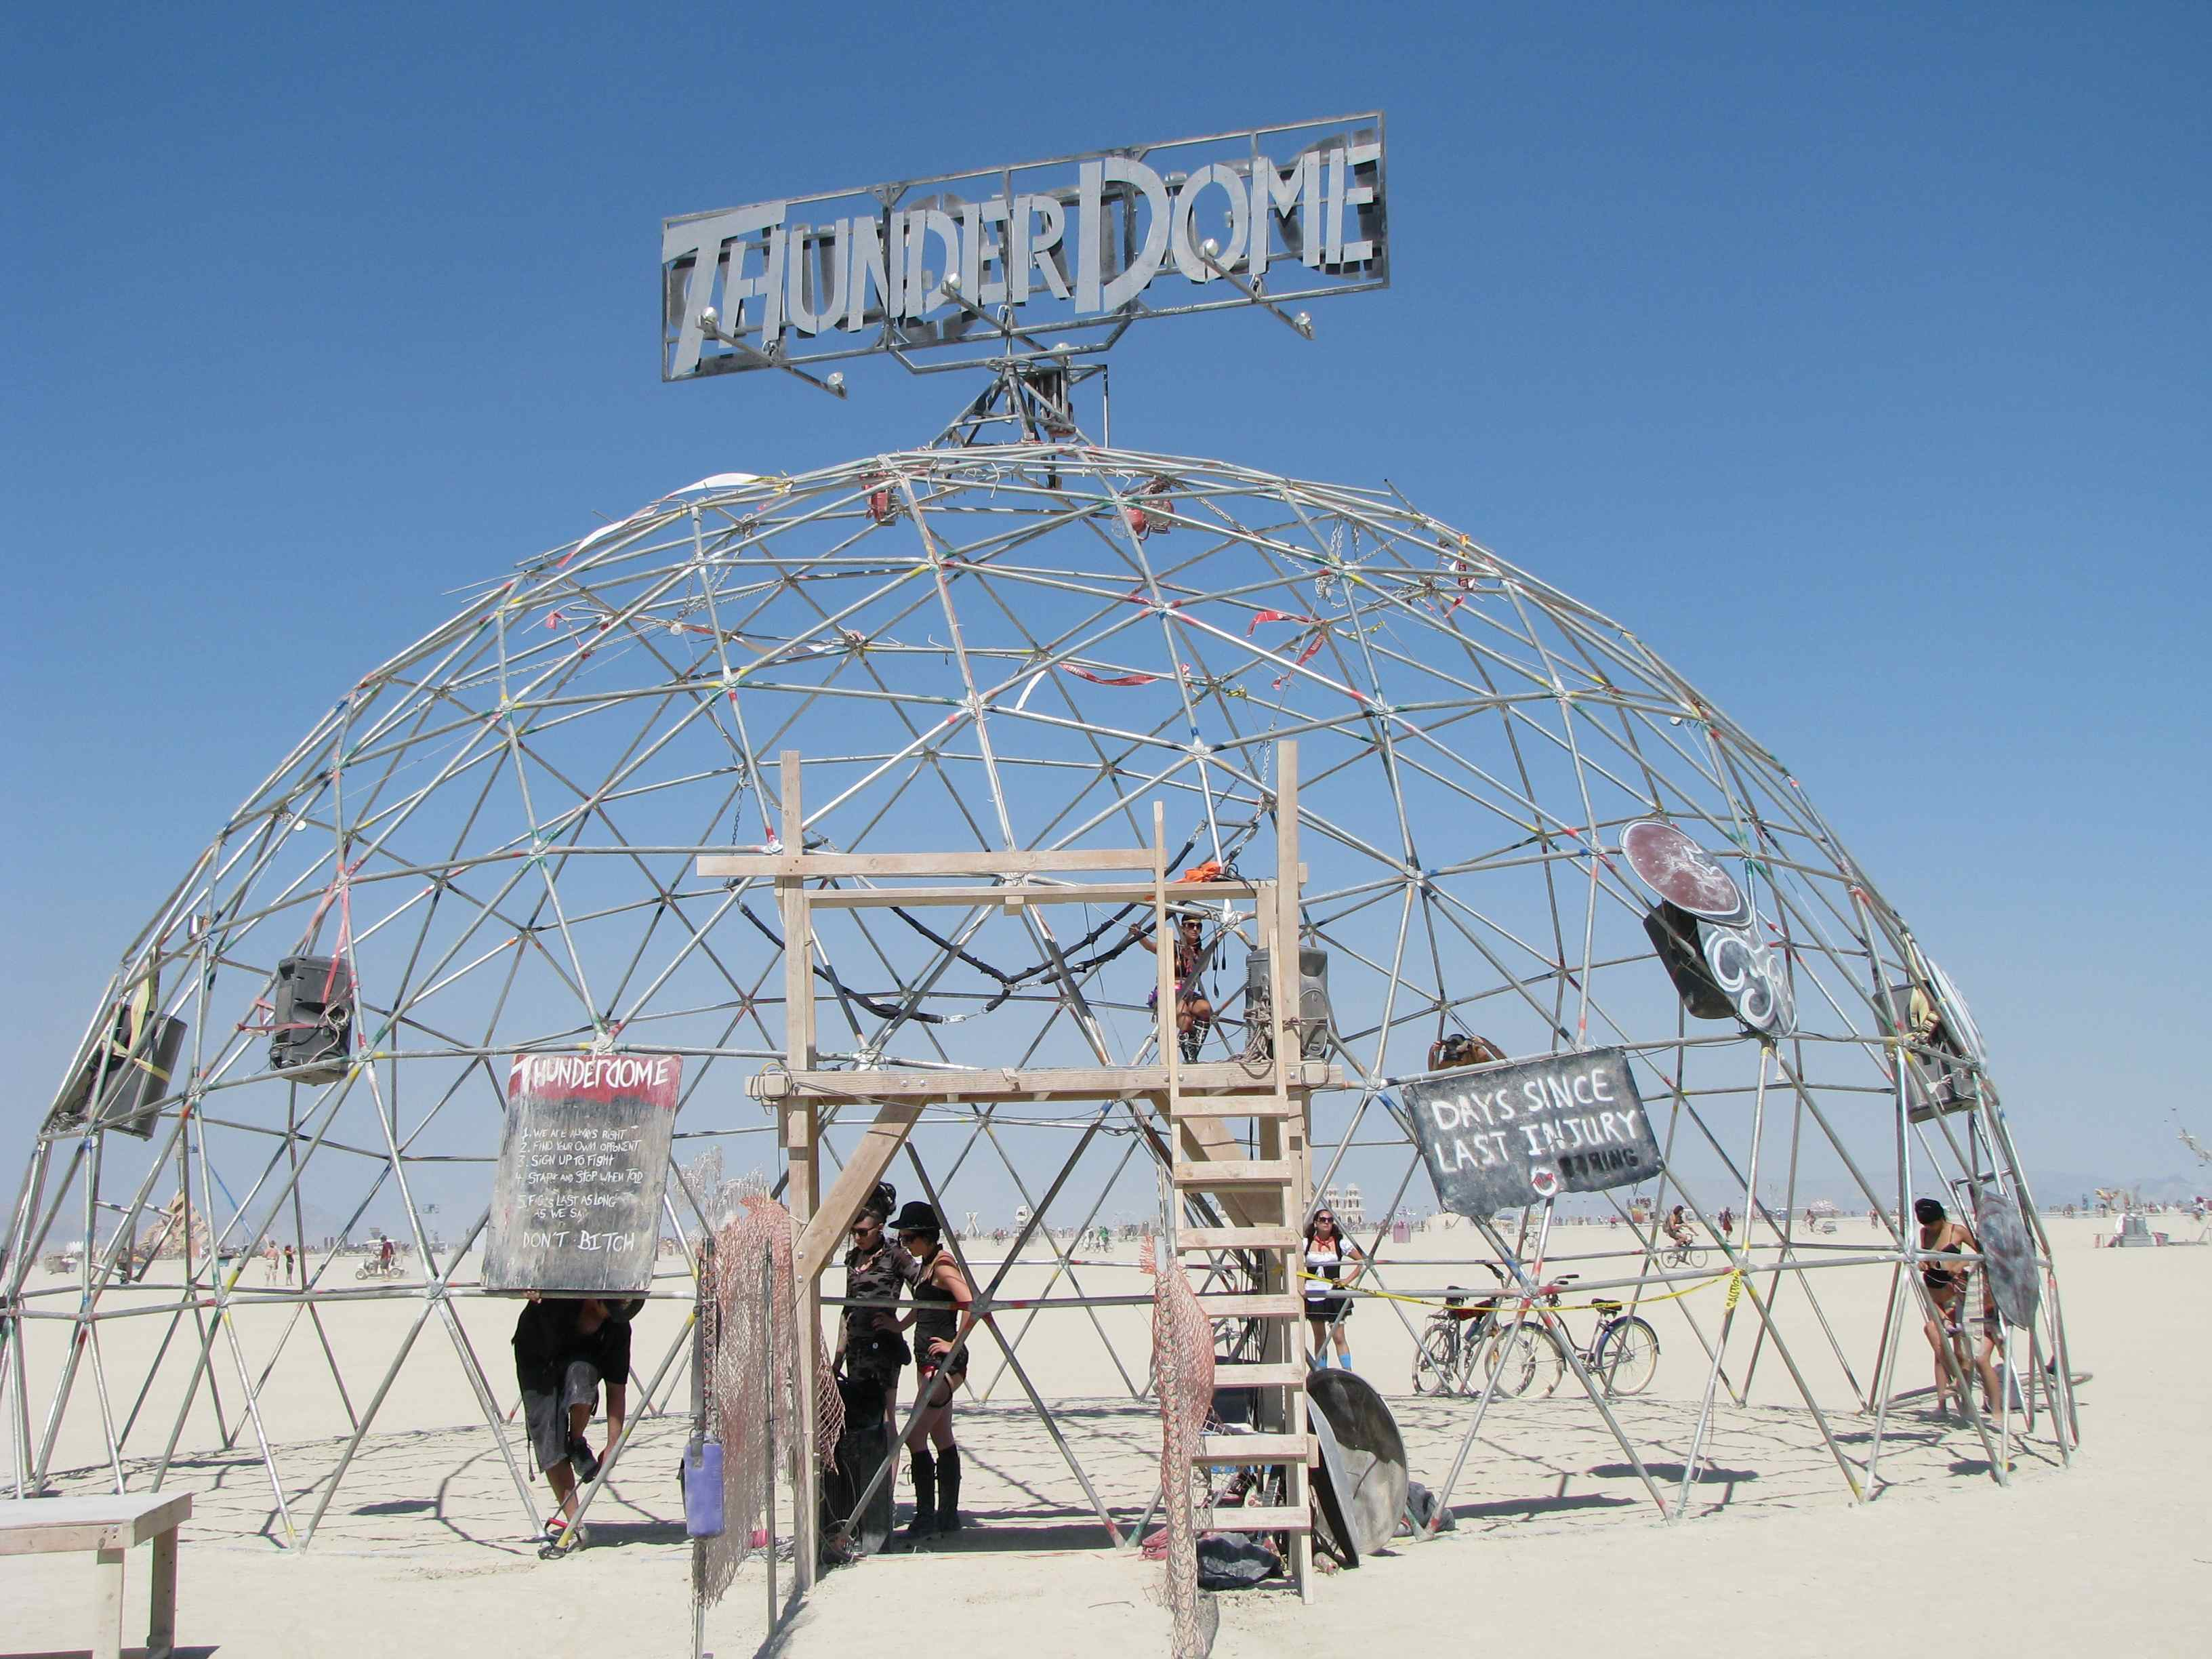 Thunderdome during the day-Burning Man 2011